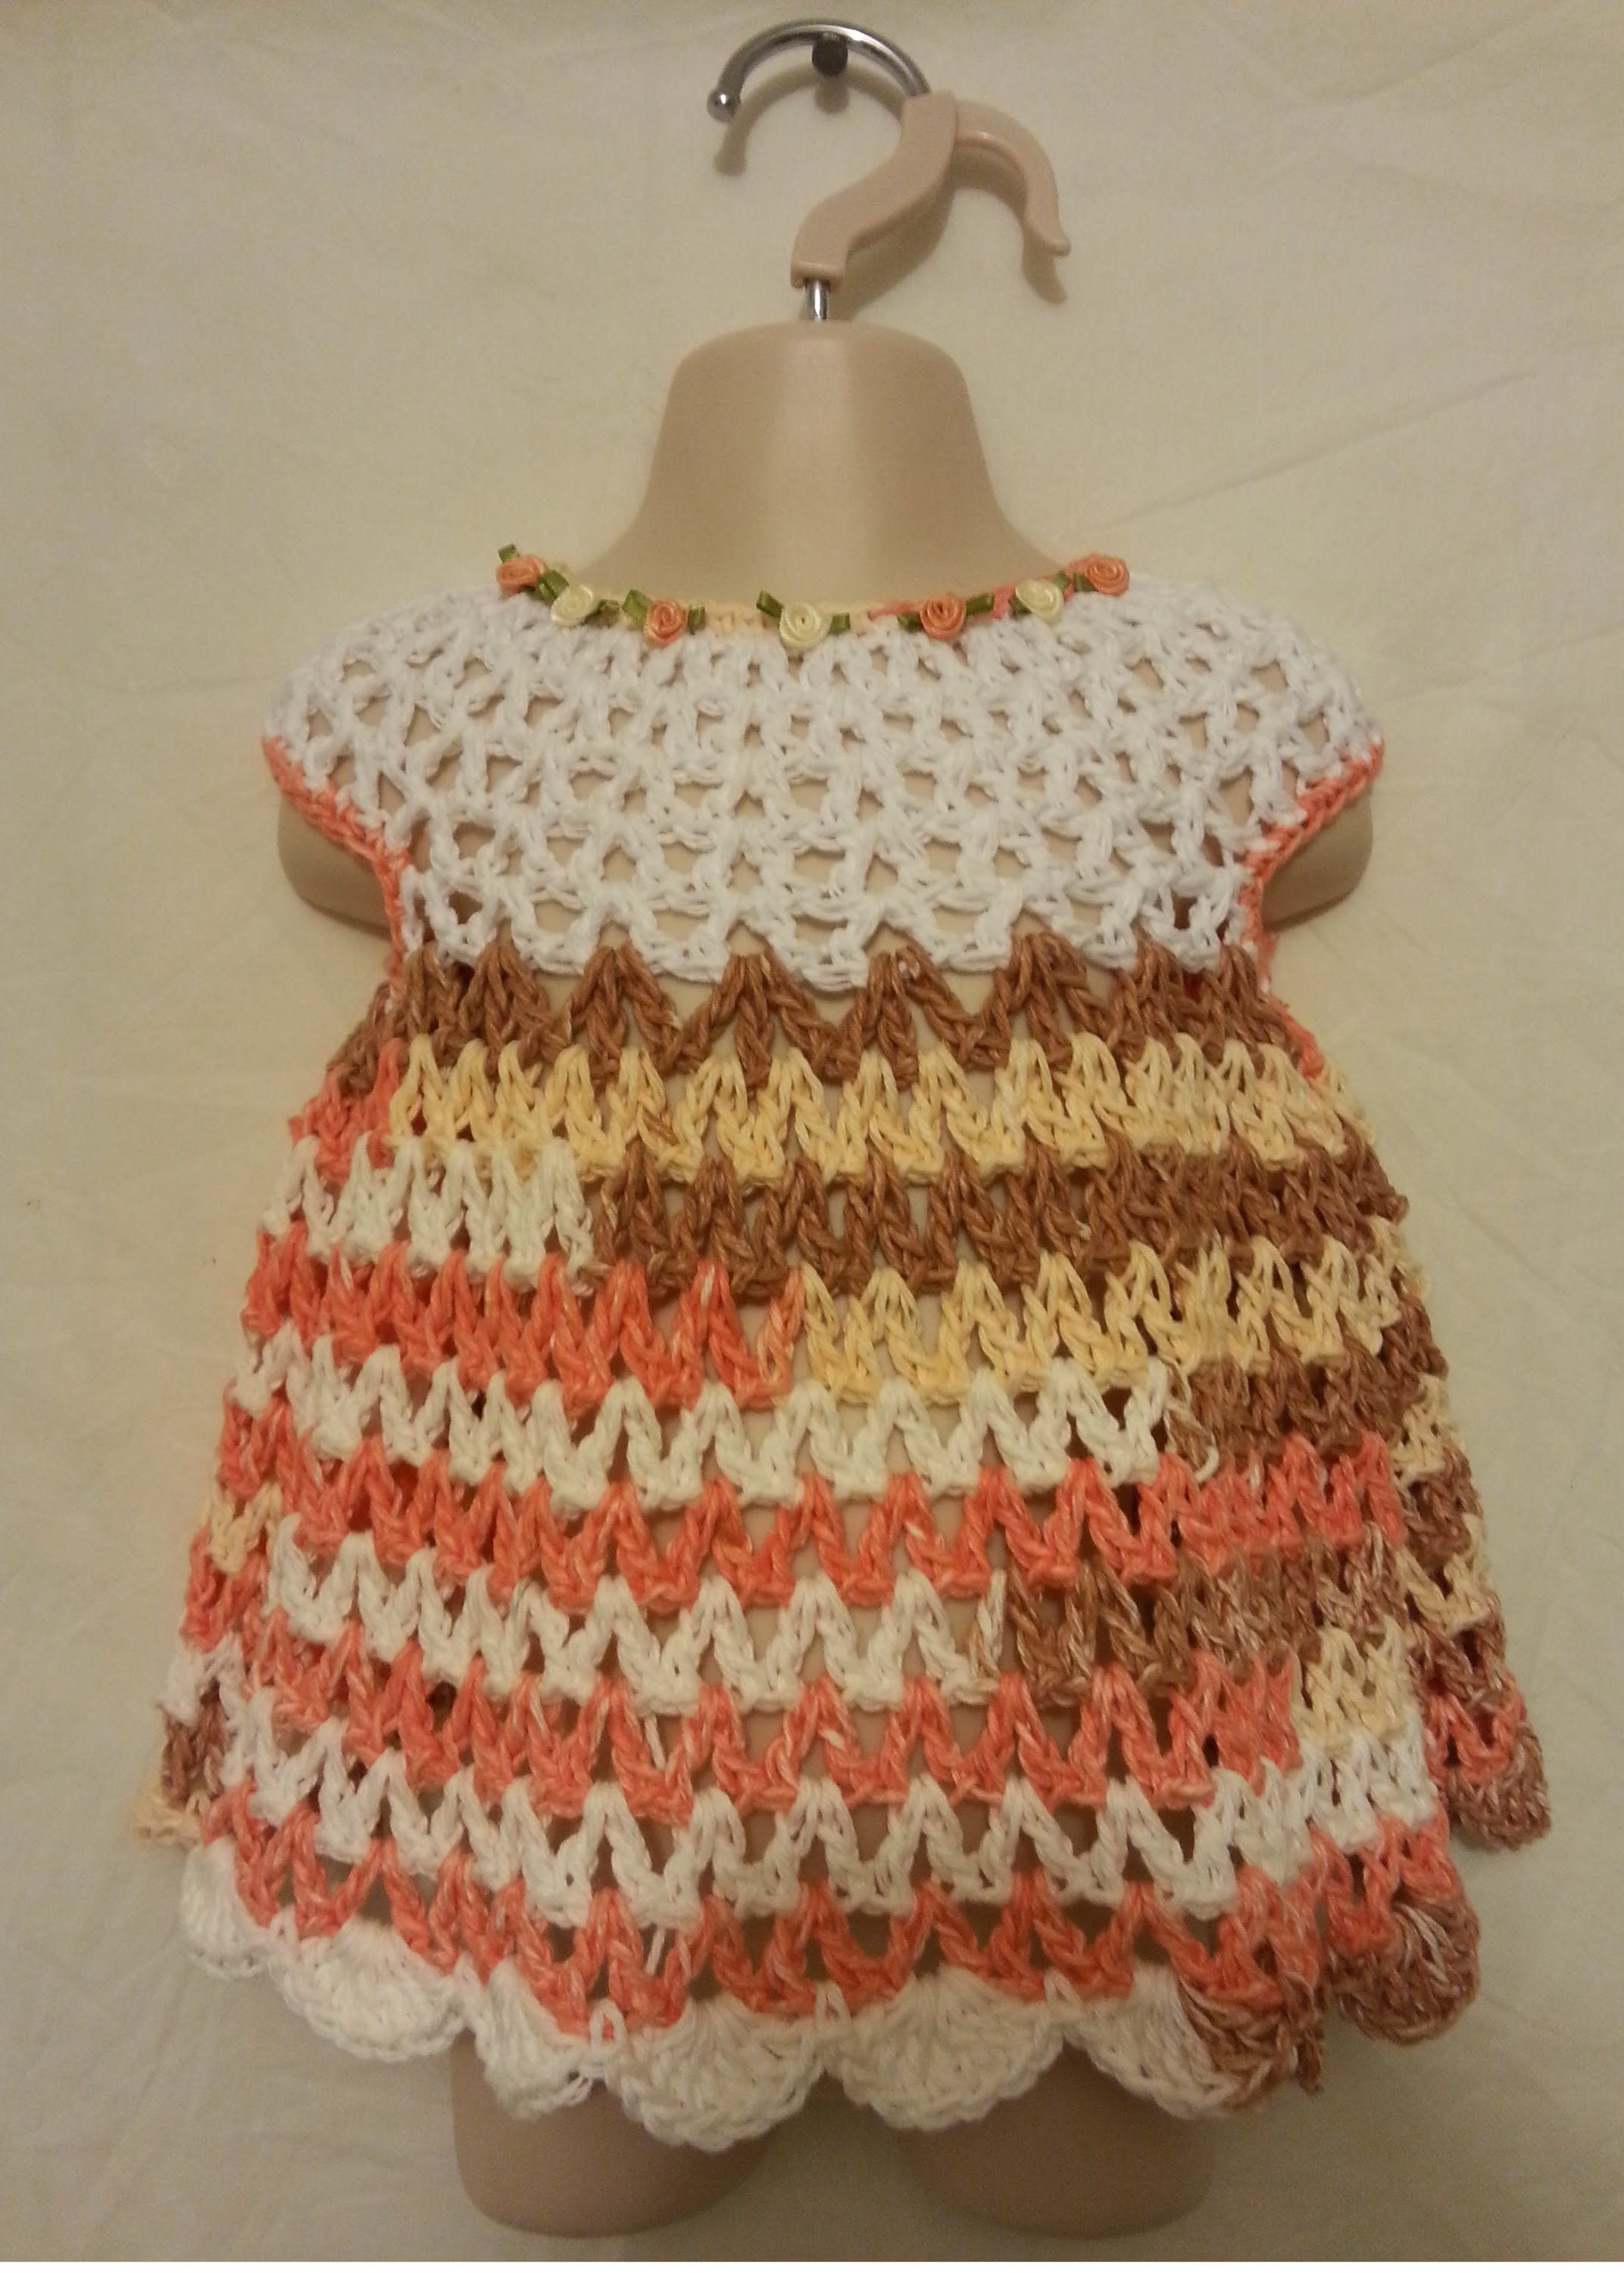 Crochet easy baby toddler spring summer dress tutorial crochet crochet easy baby toddler spring summer dress tutorial bankloansurffo Choice Image